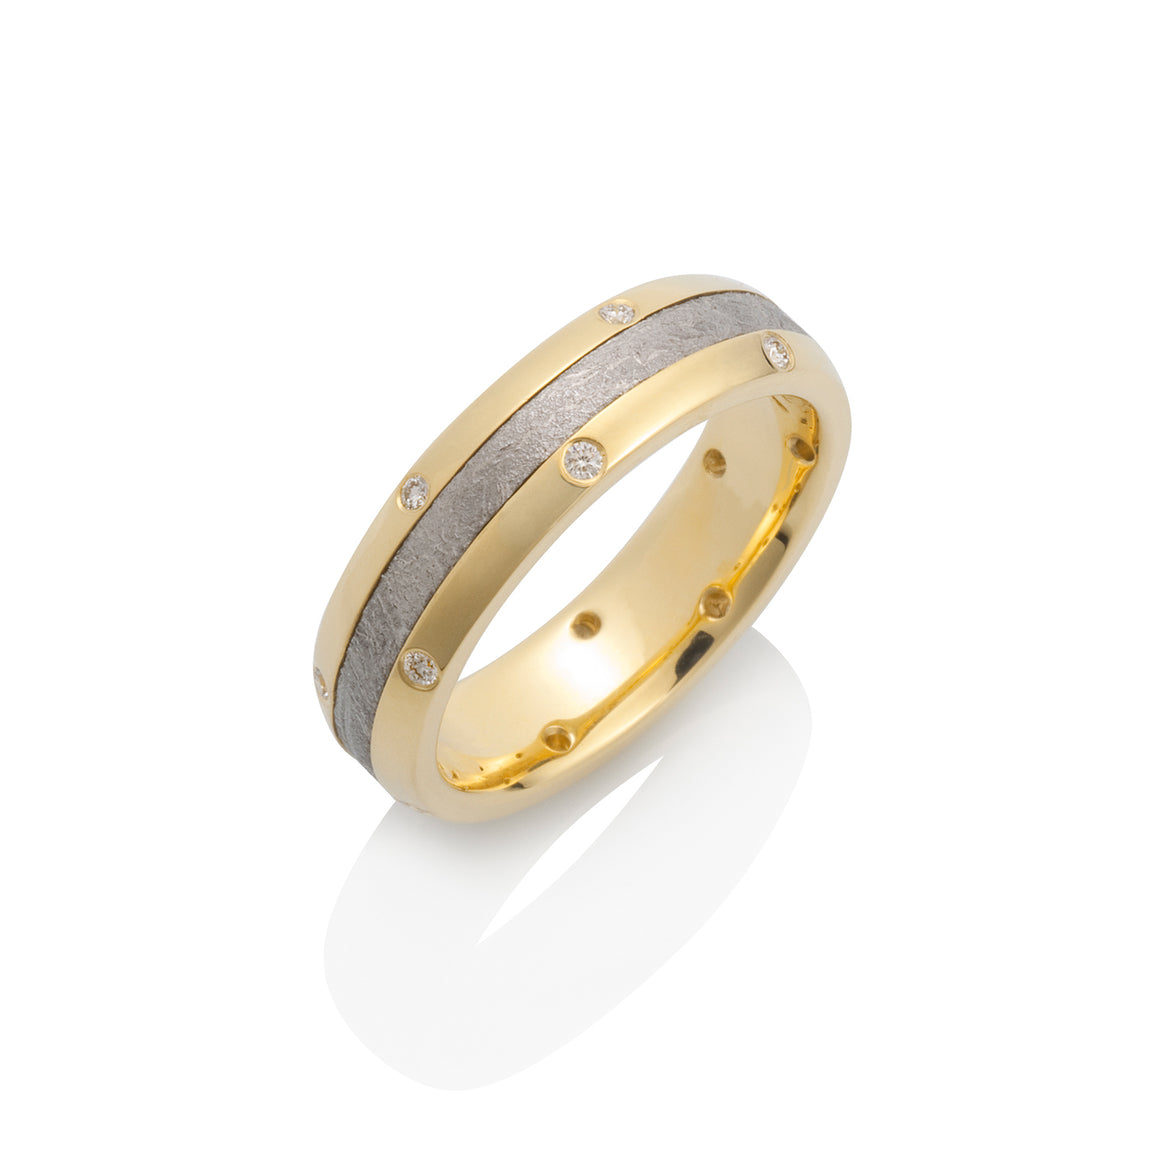 Chris Ploof Canopus Meteorite 18k Yellow Gold and Diamond Ring